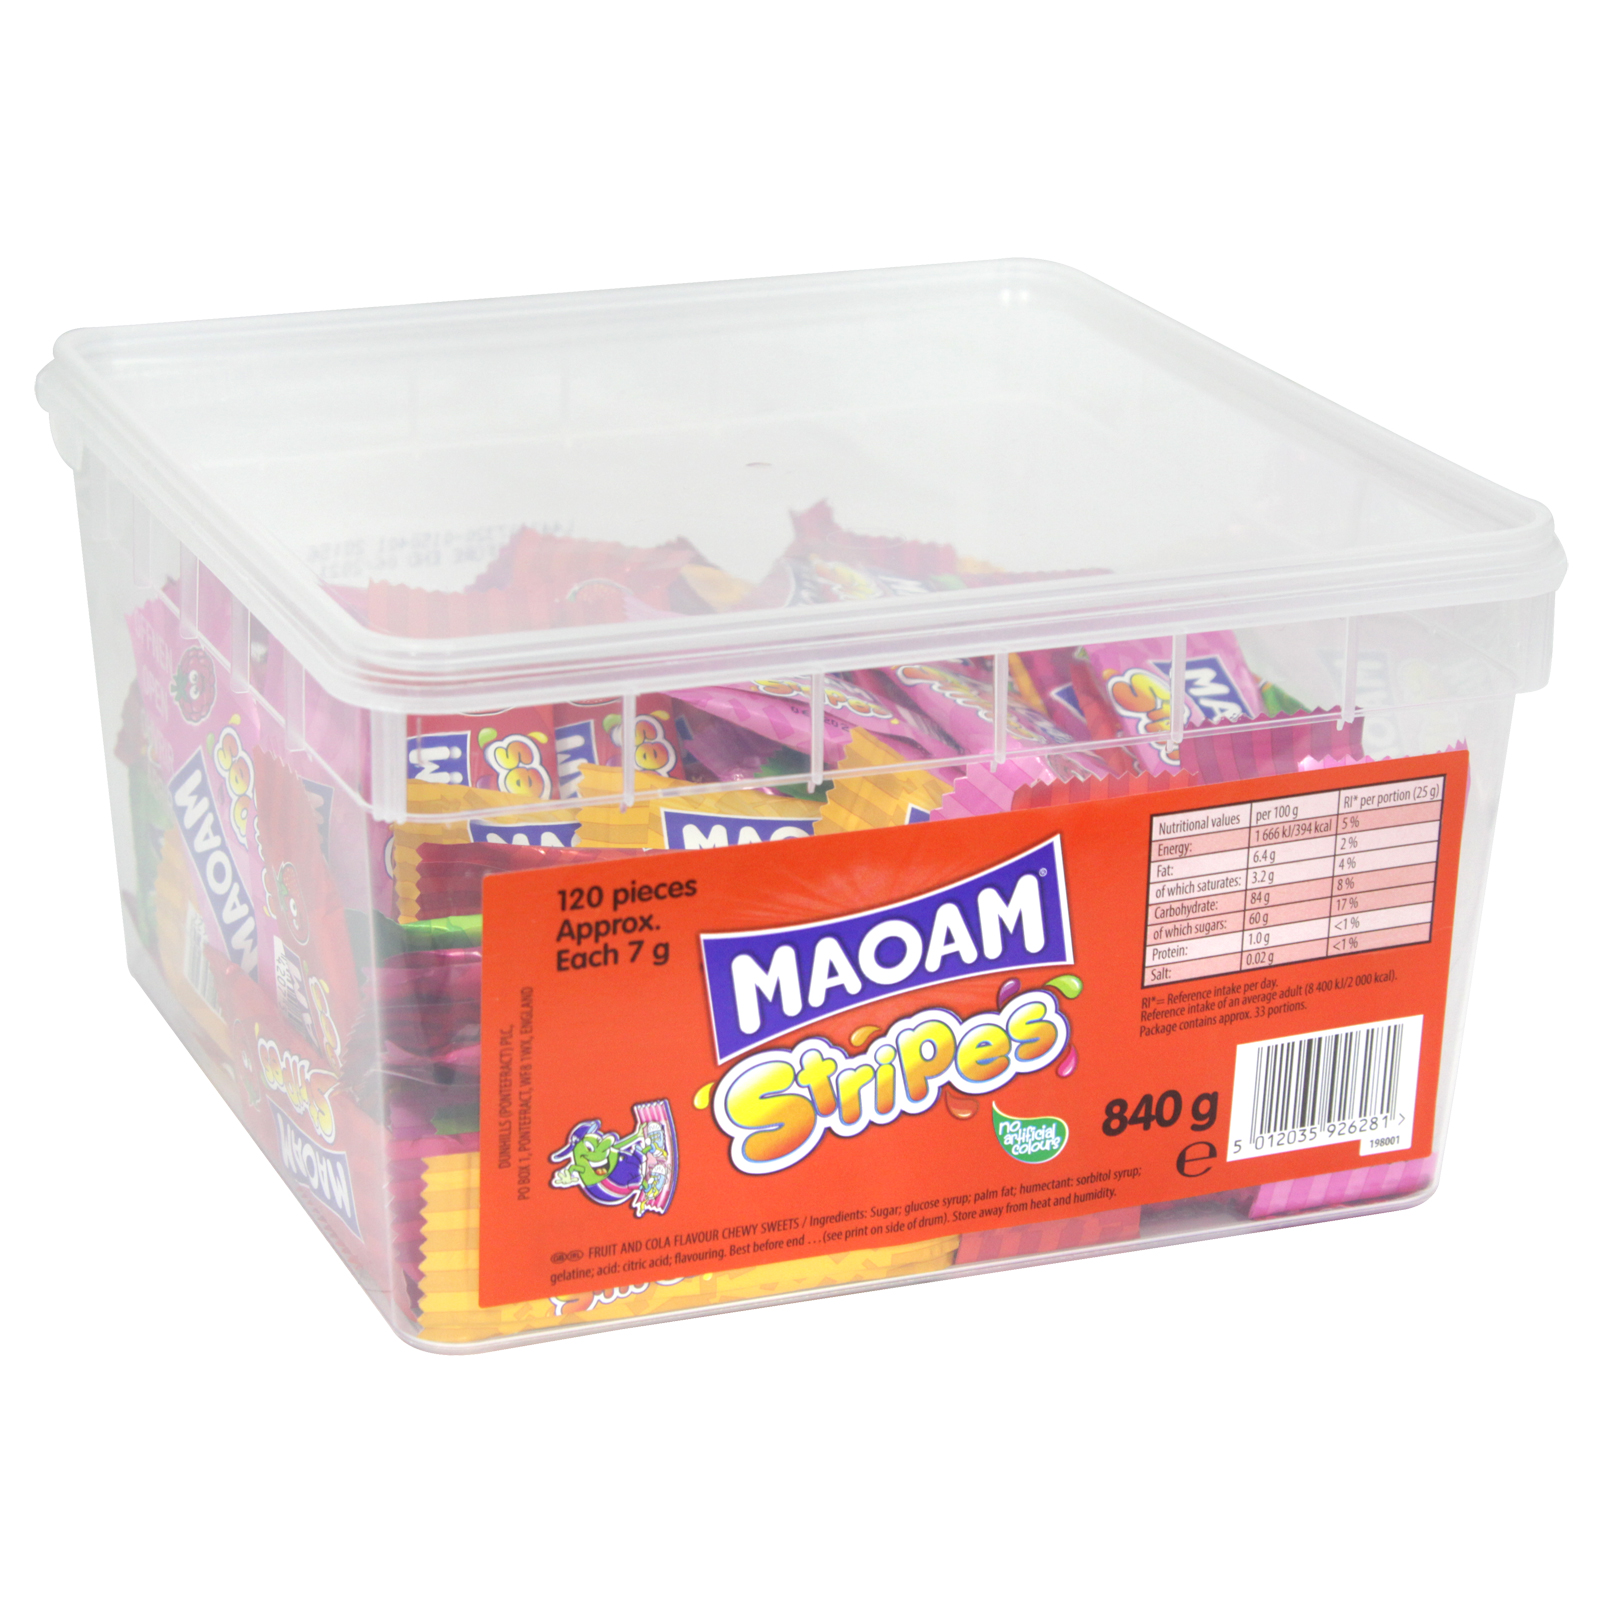 MAOAM STRIPES DRUM 840G APPROX 120 PIECES